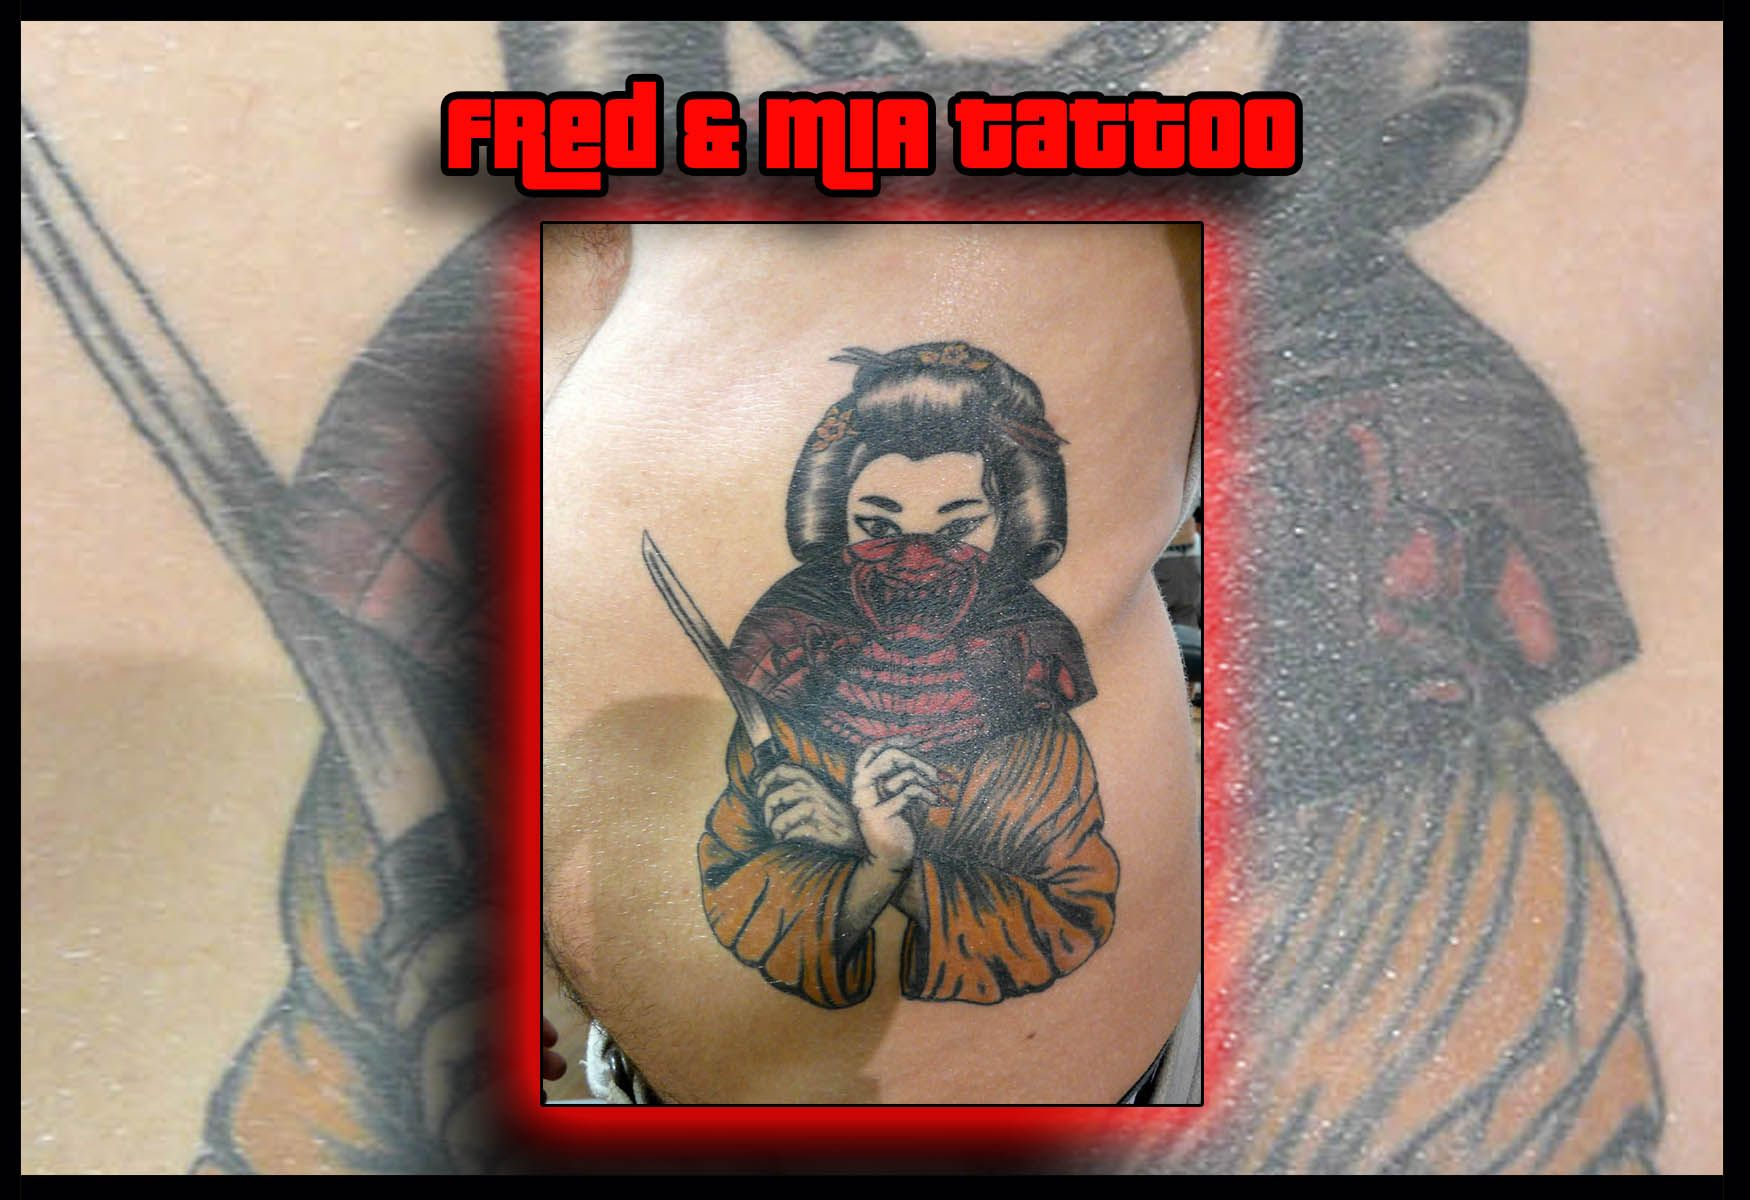 www.fredetmiatattoo.com https://www.facebook.com/fredetmiatattoo https://twitter.com/fredetmiatattoo https://www.facebook.com/tattooontheweb https://twitter.com/tattoontheweb